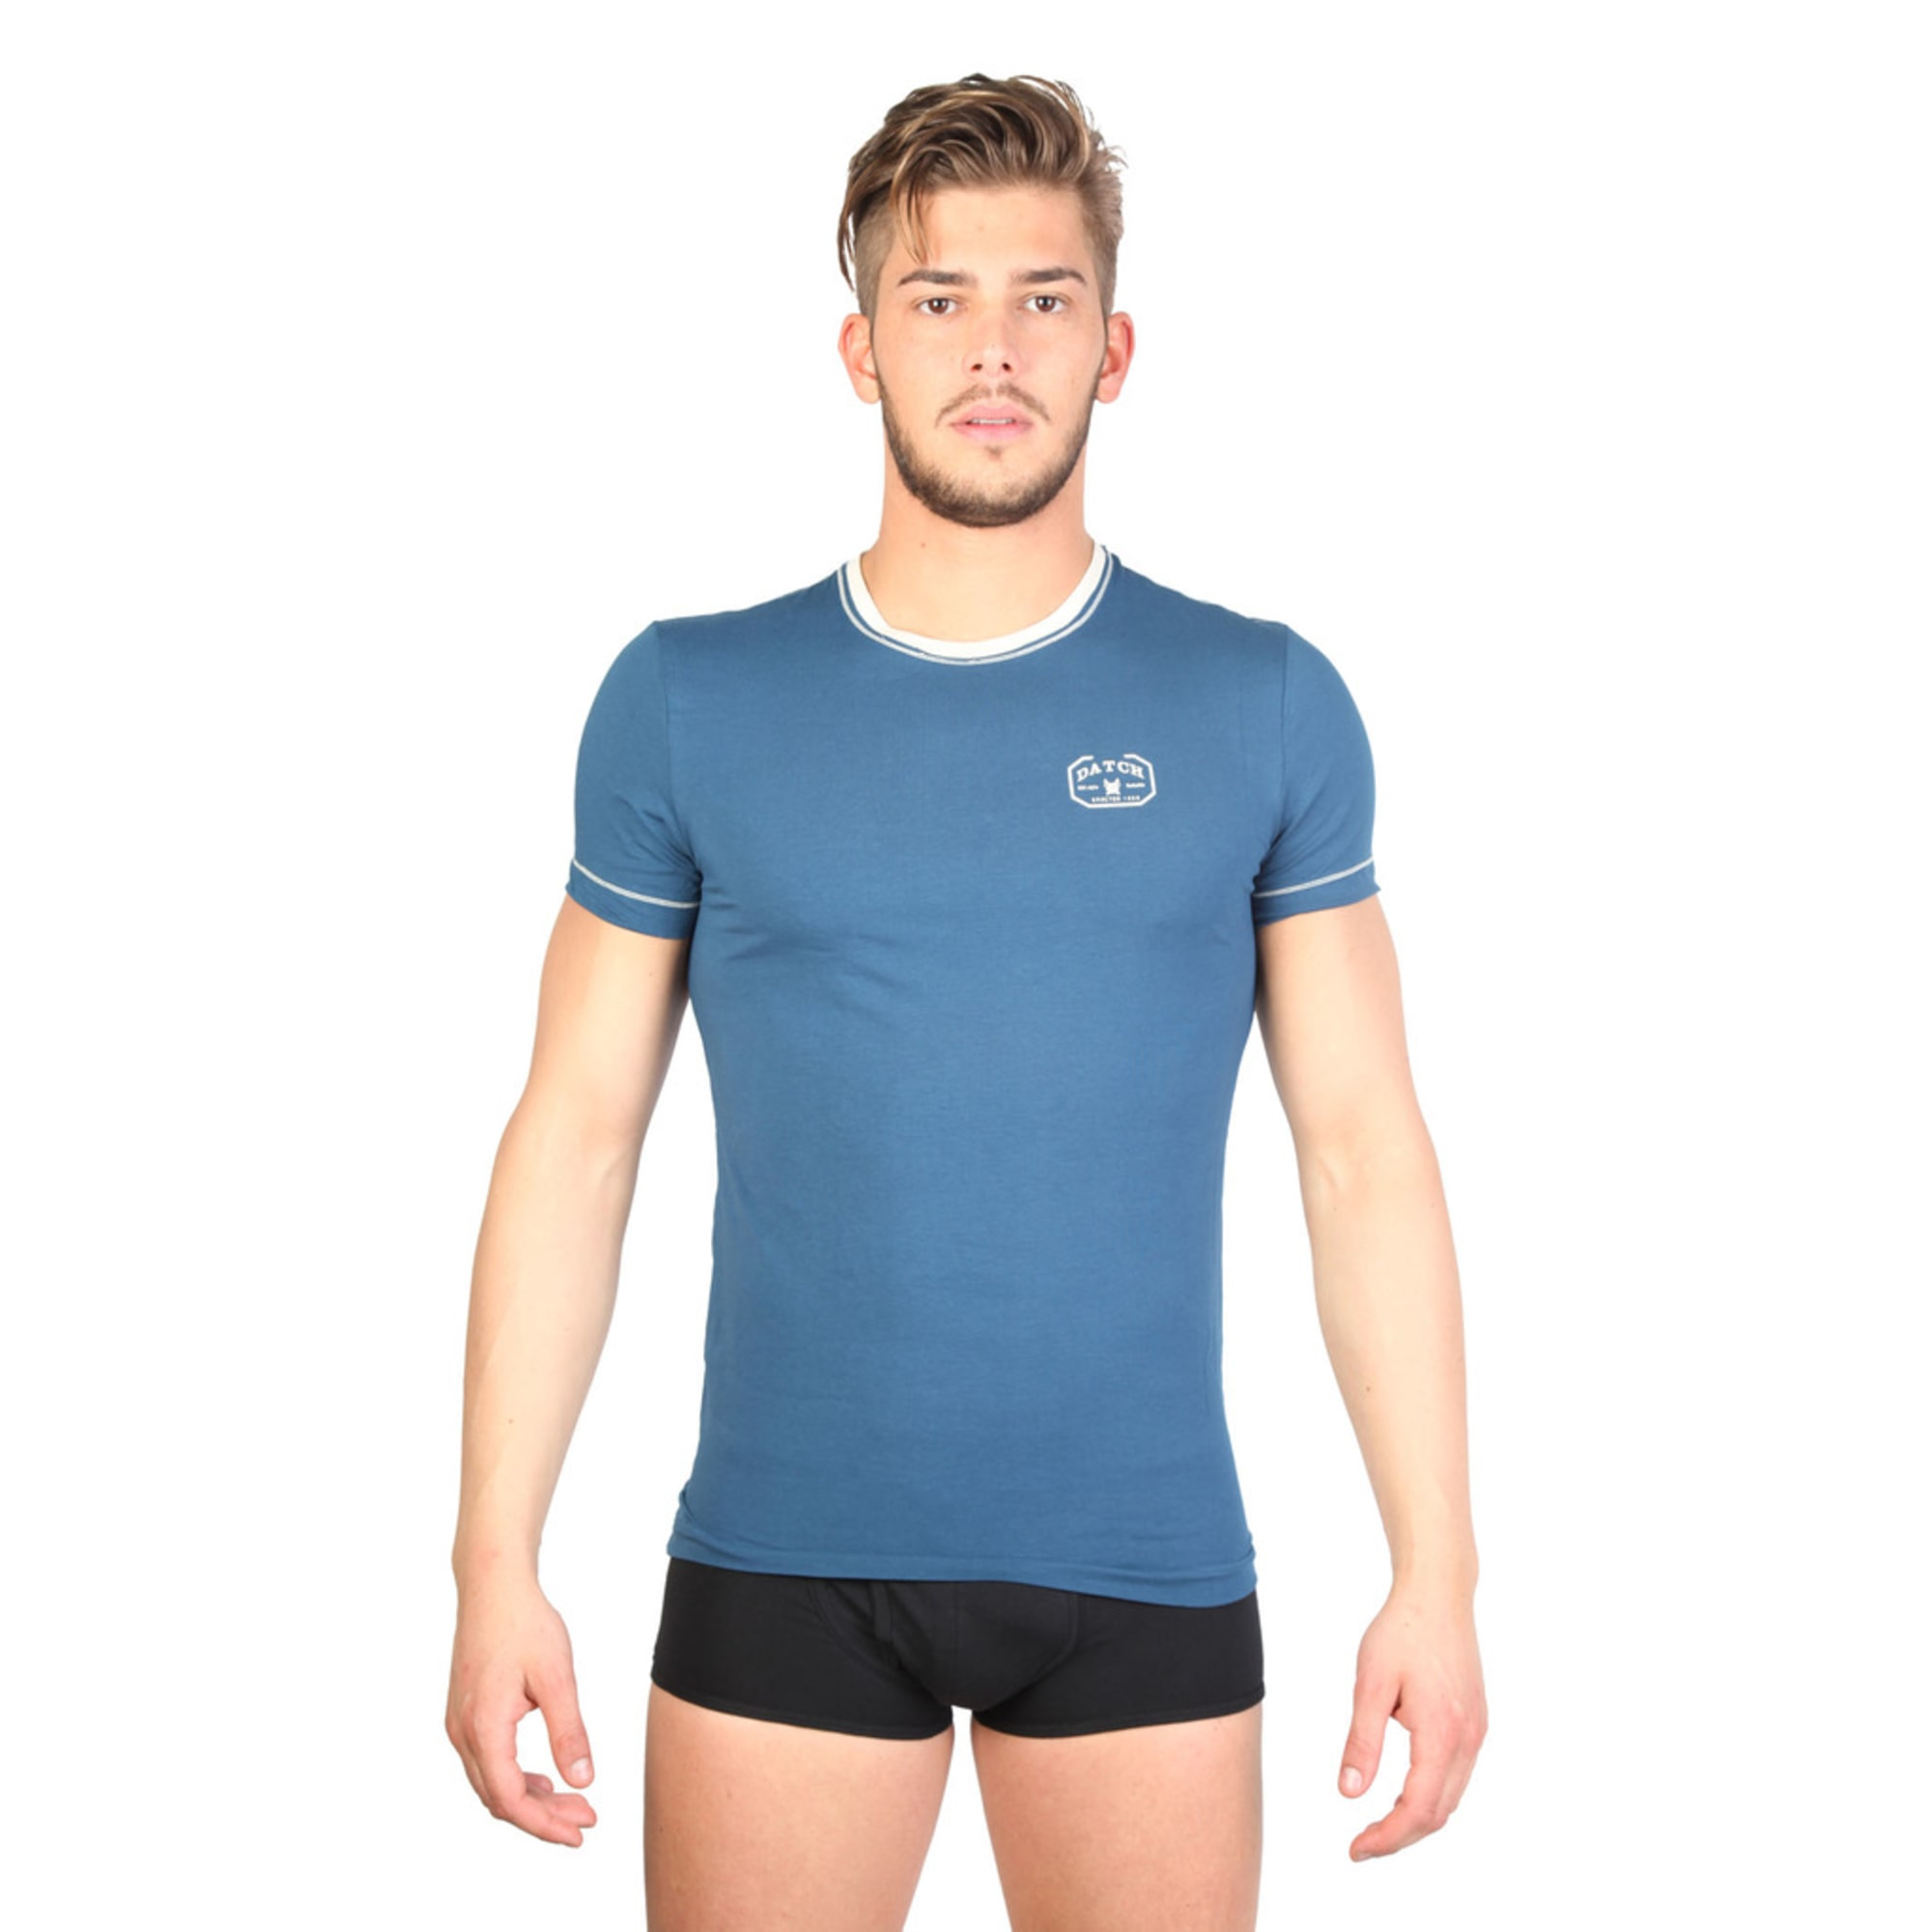 T-shirt DATCH Blue, navy, turquoise